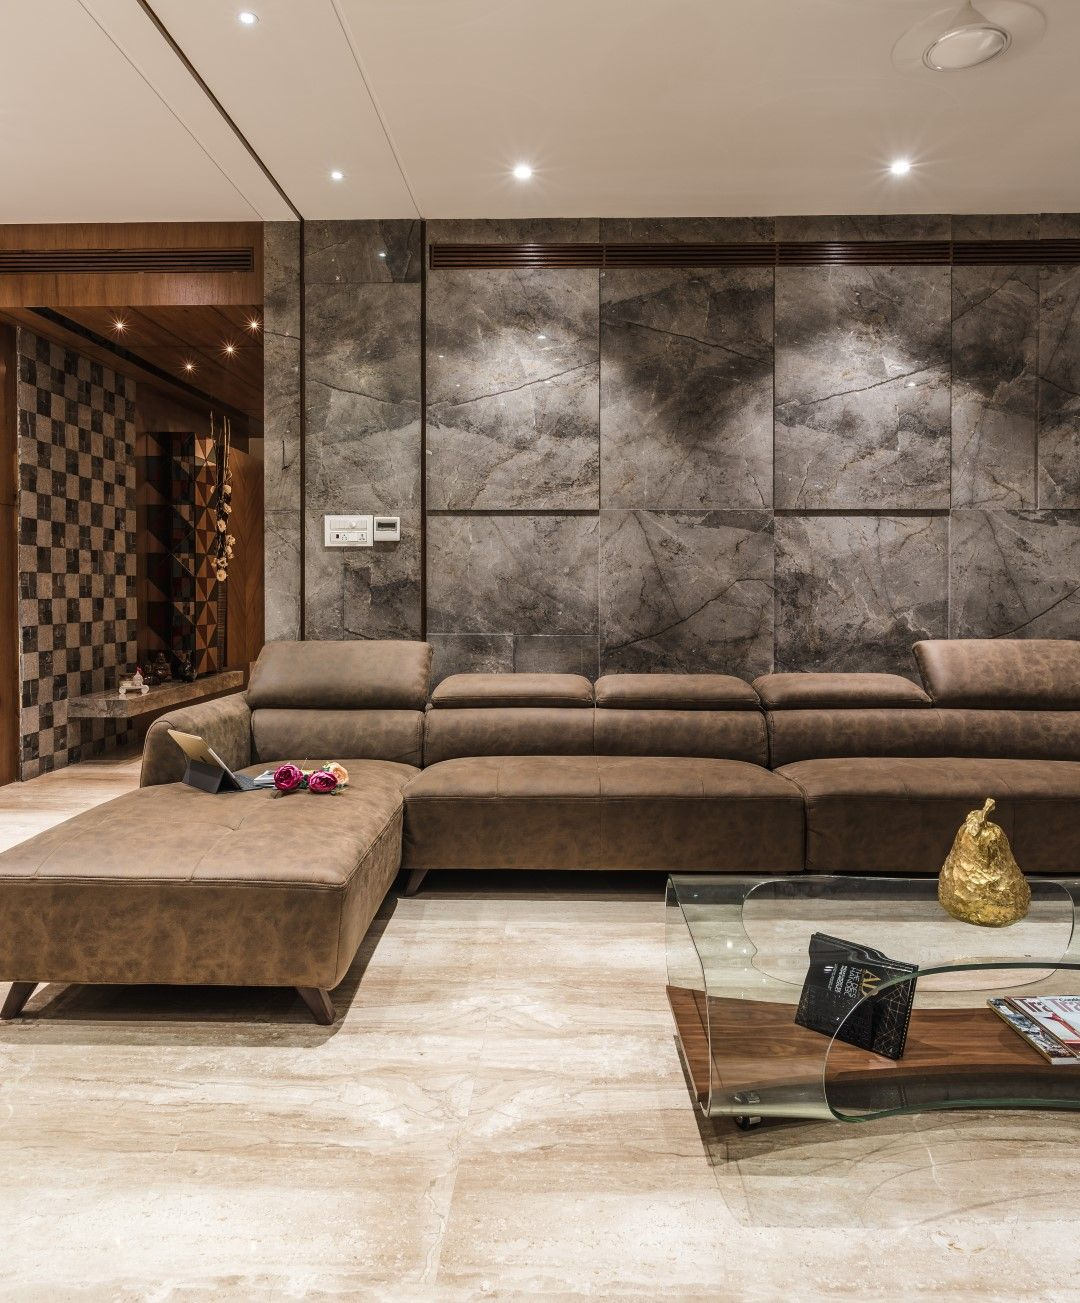 A Stylish And Urban Apartment Designed By Design Scope With